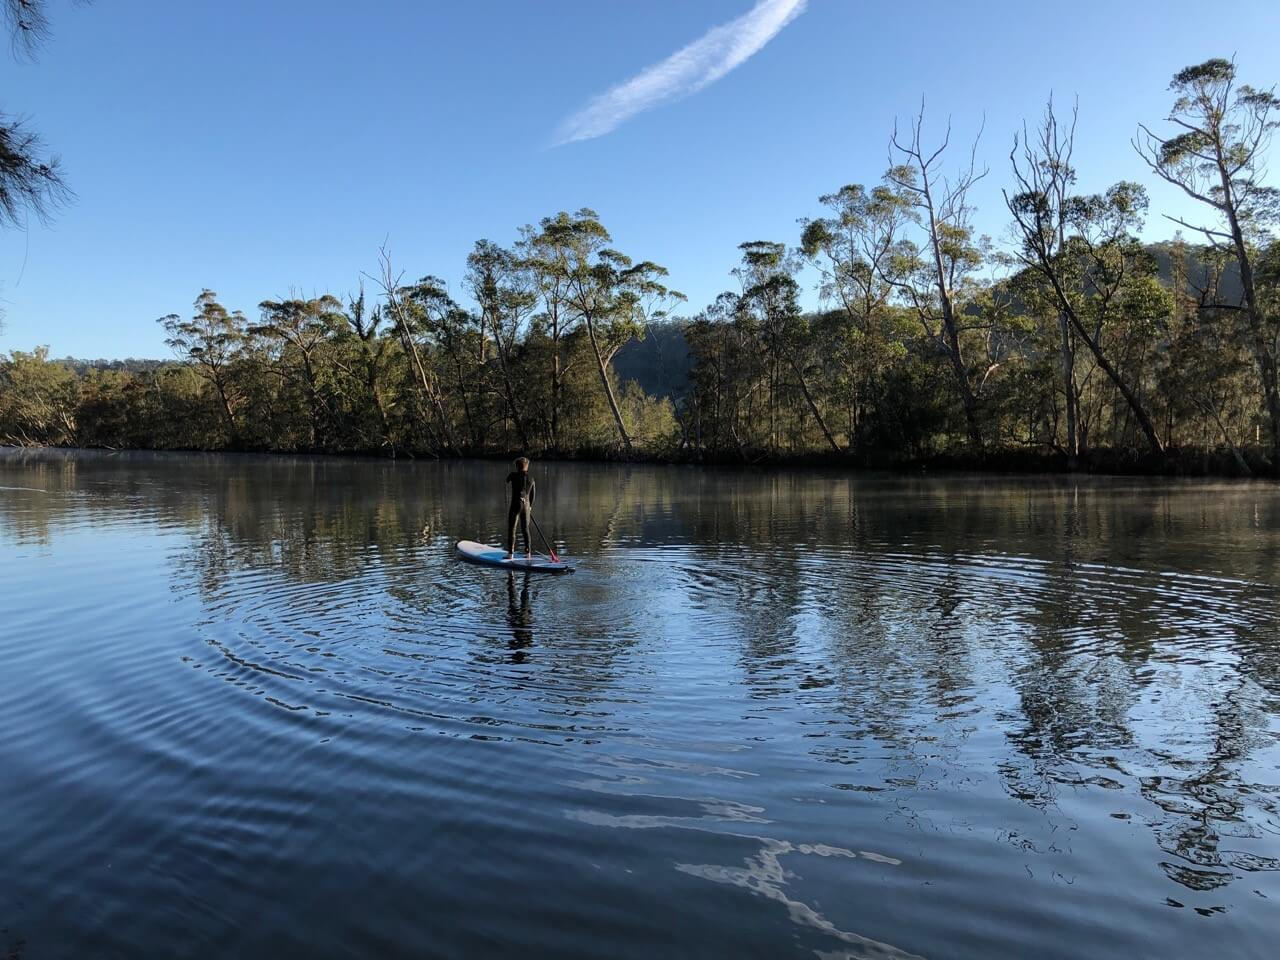 Man standing on paddle board on water reflecting the sky and tree lined bank